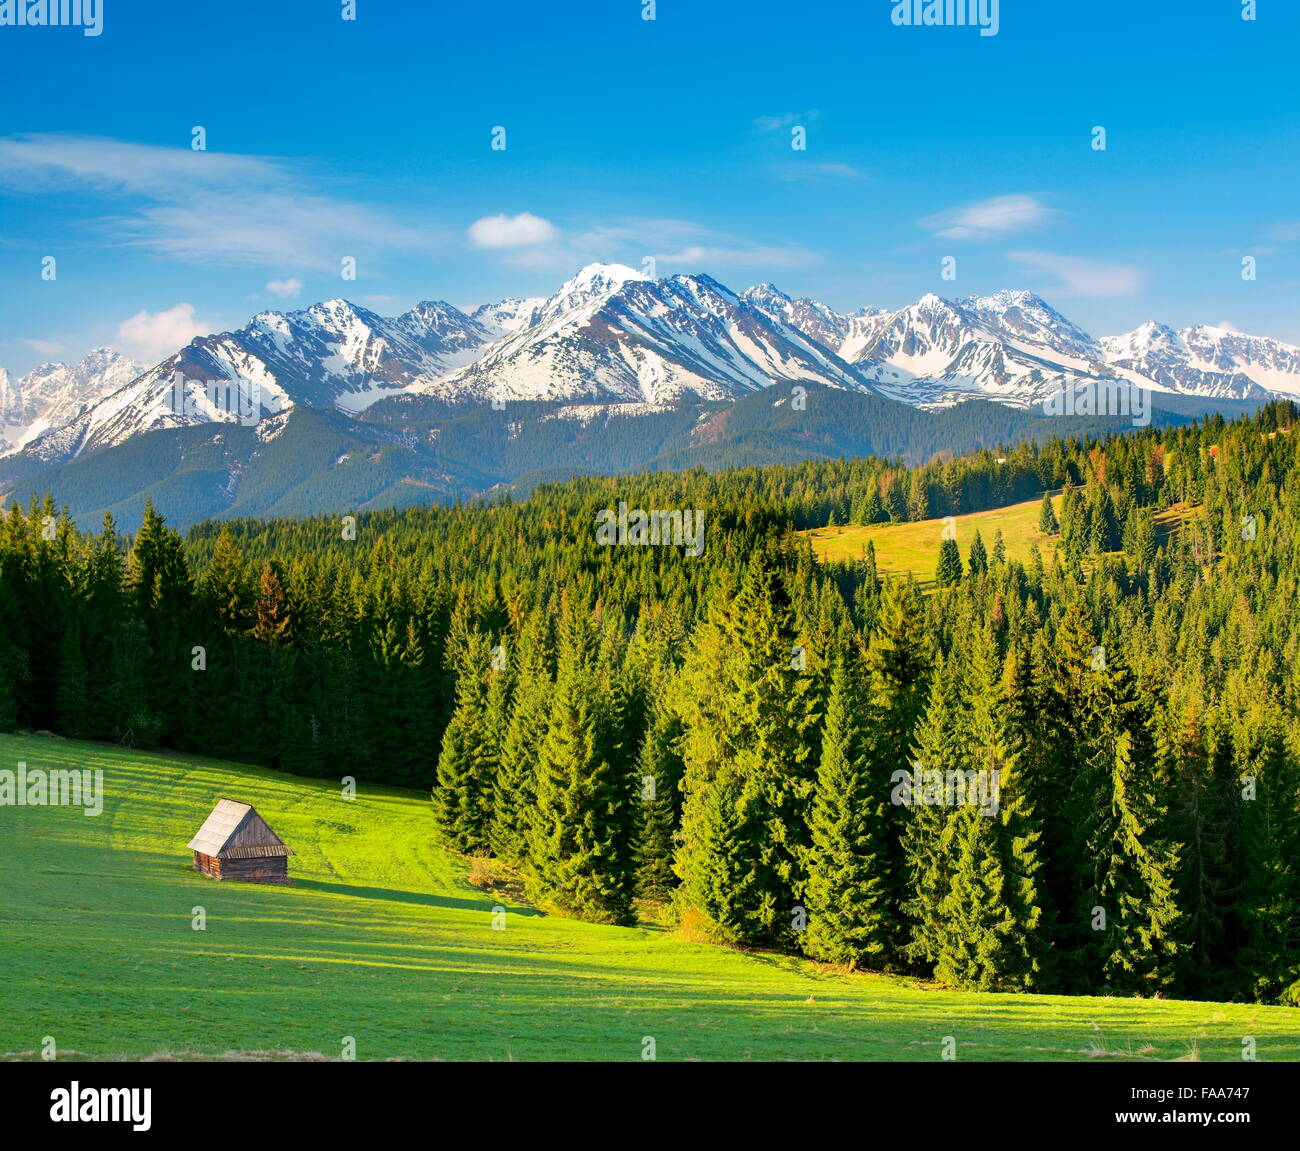 Szymkowka Glade,Tatra Mountains, Poland Stock Photo